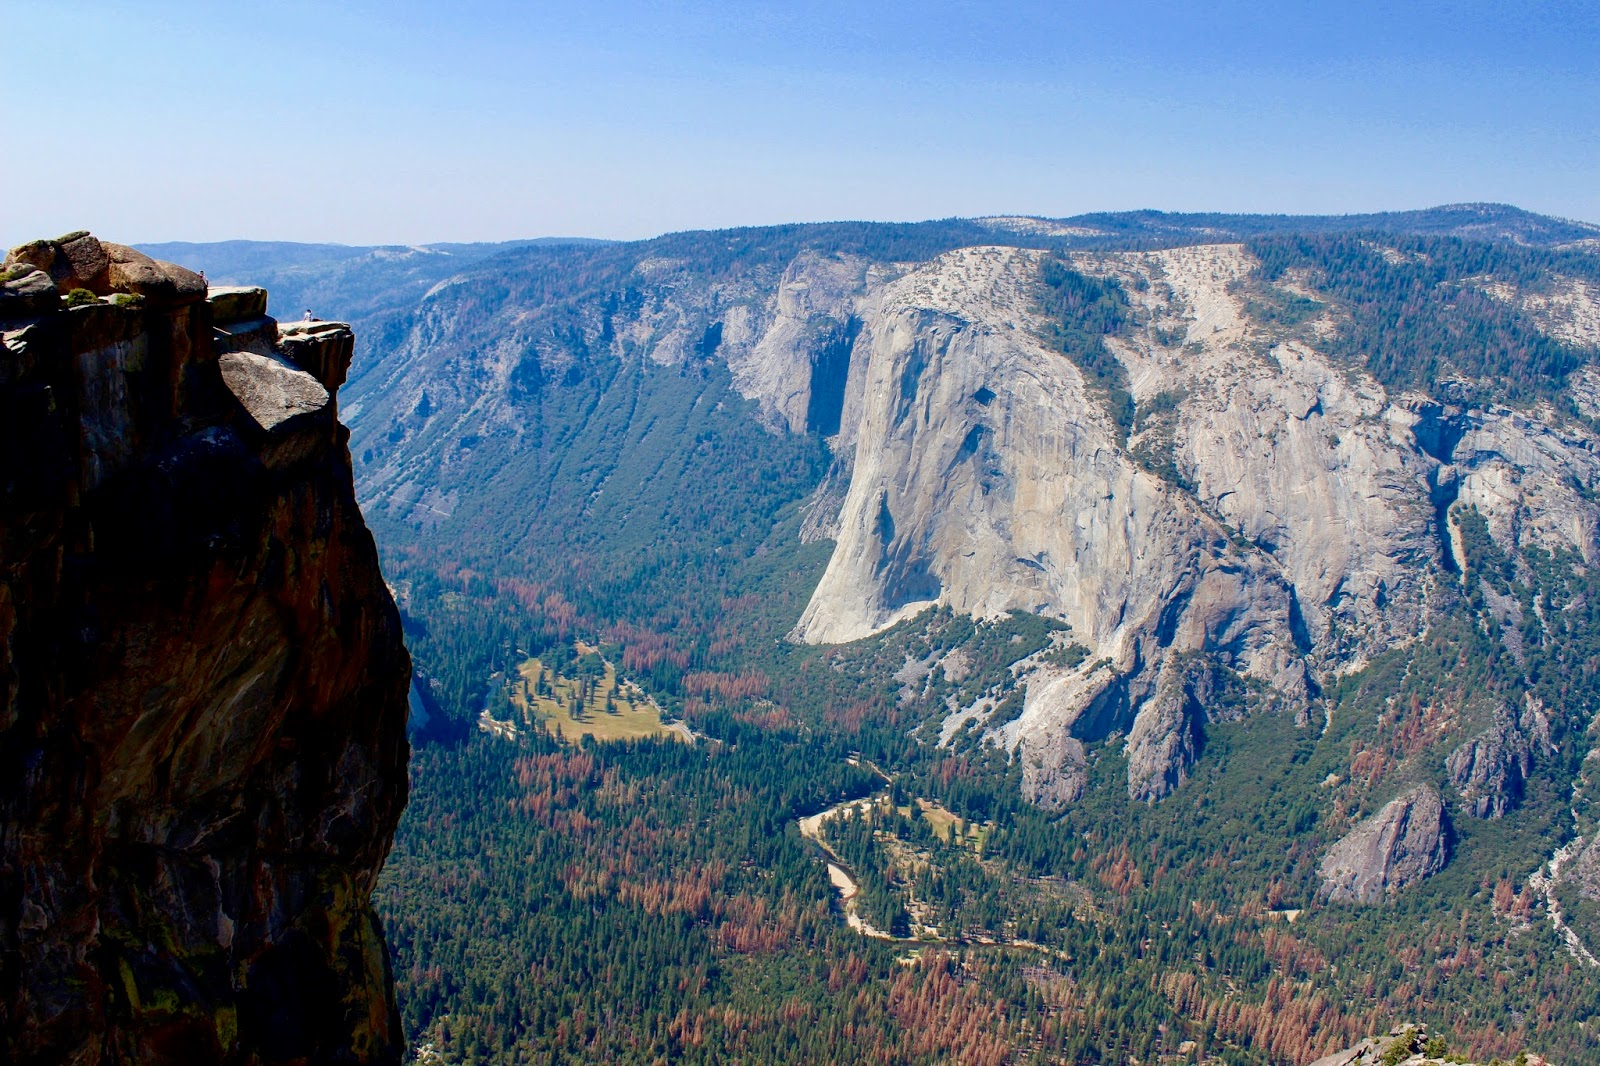 Traft Point and El Capitan in Yosemite National Park California